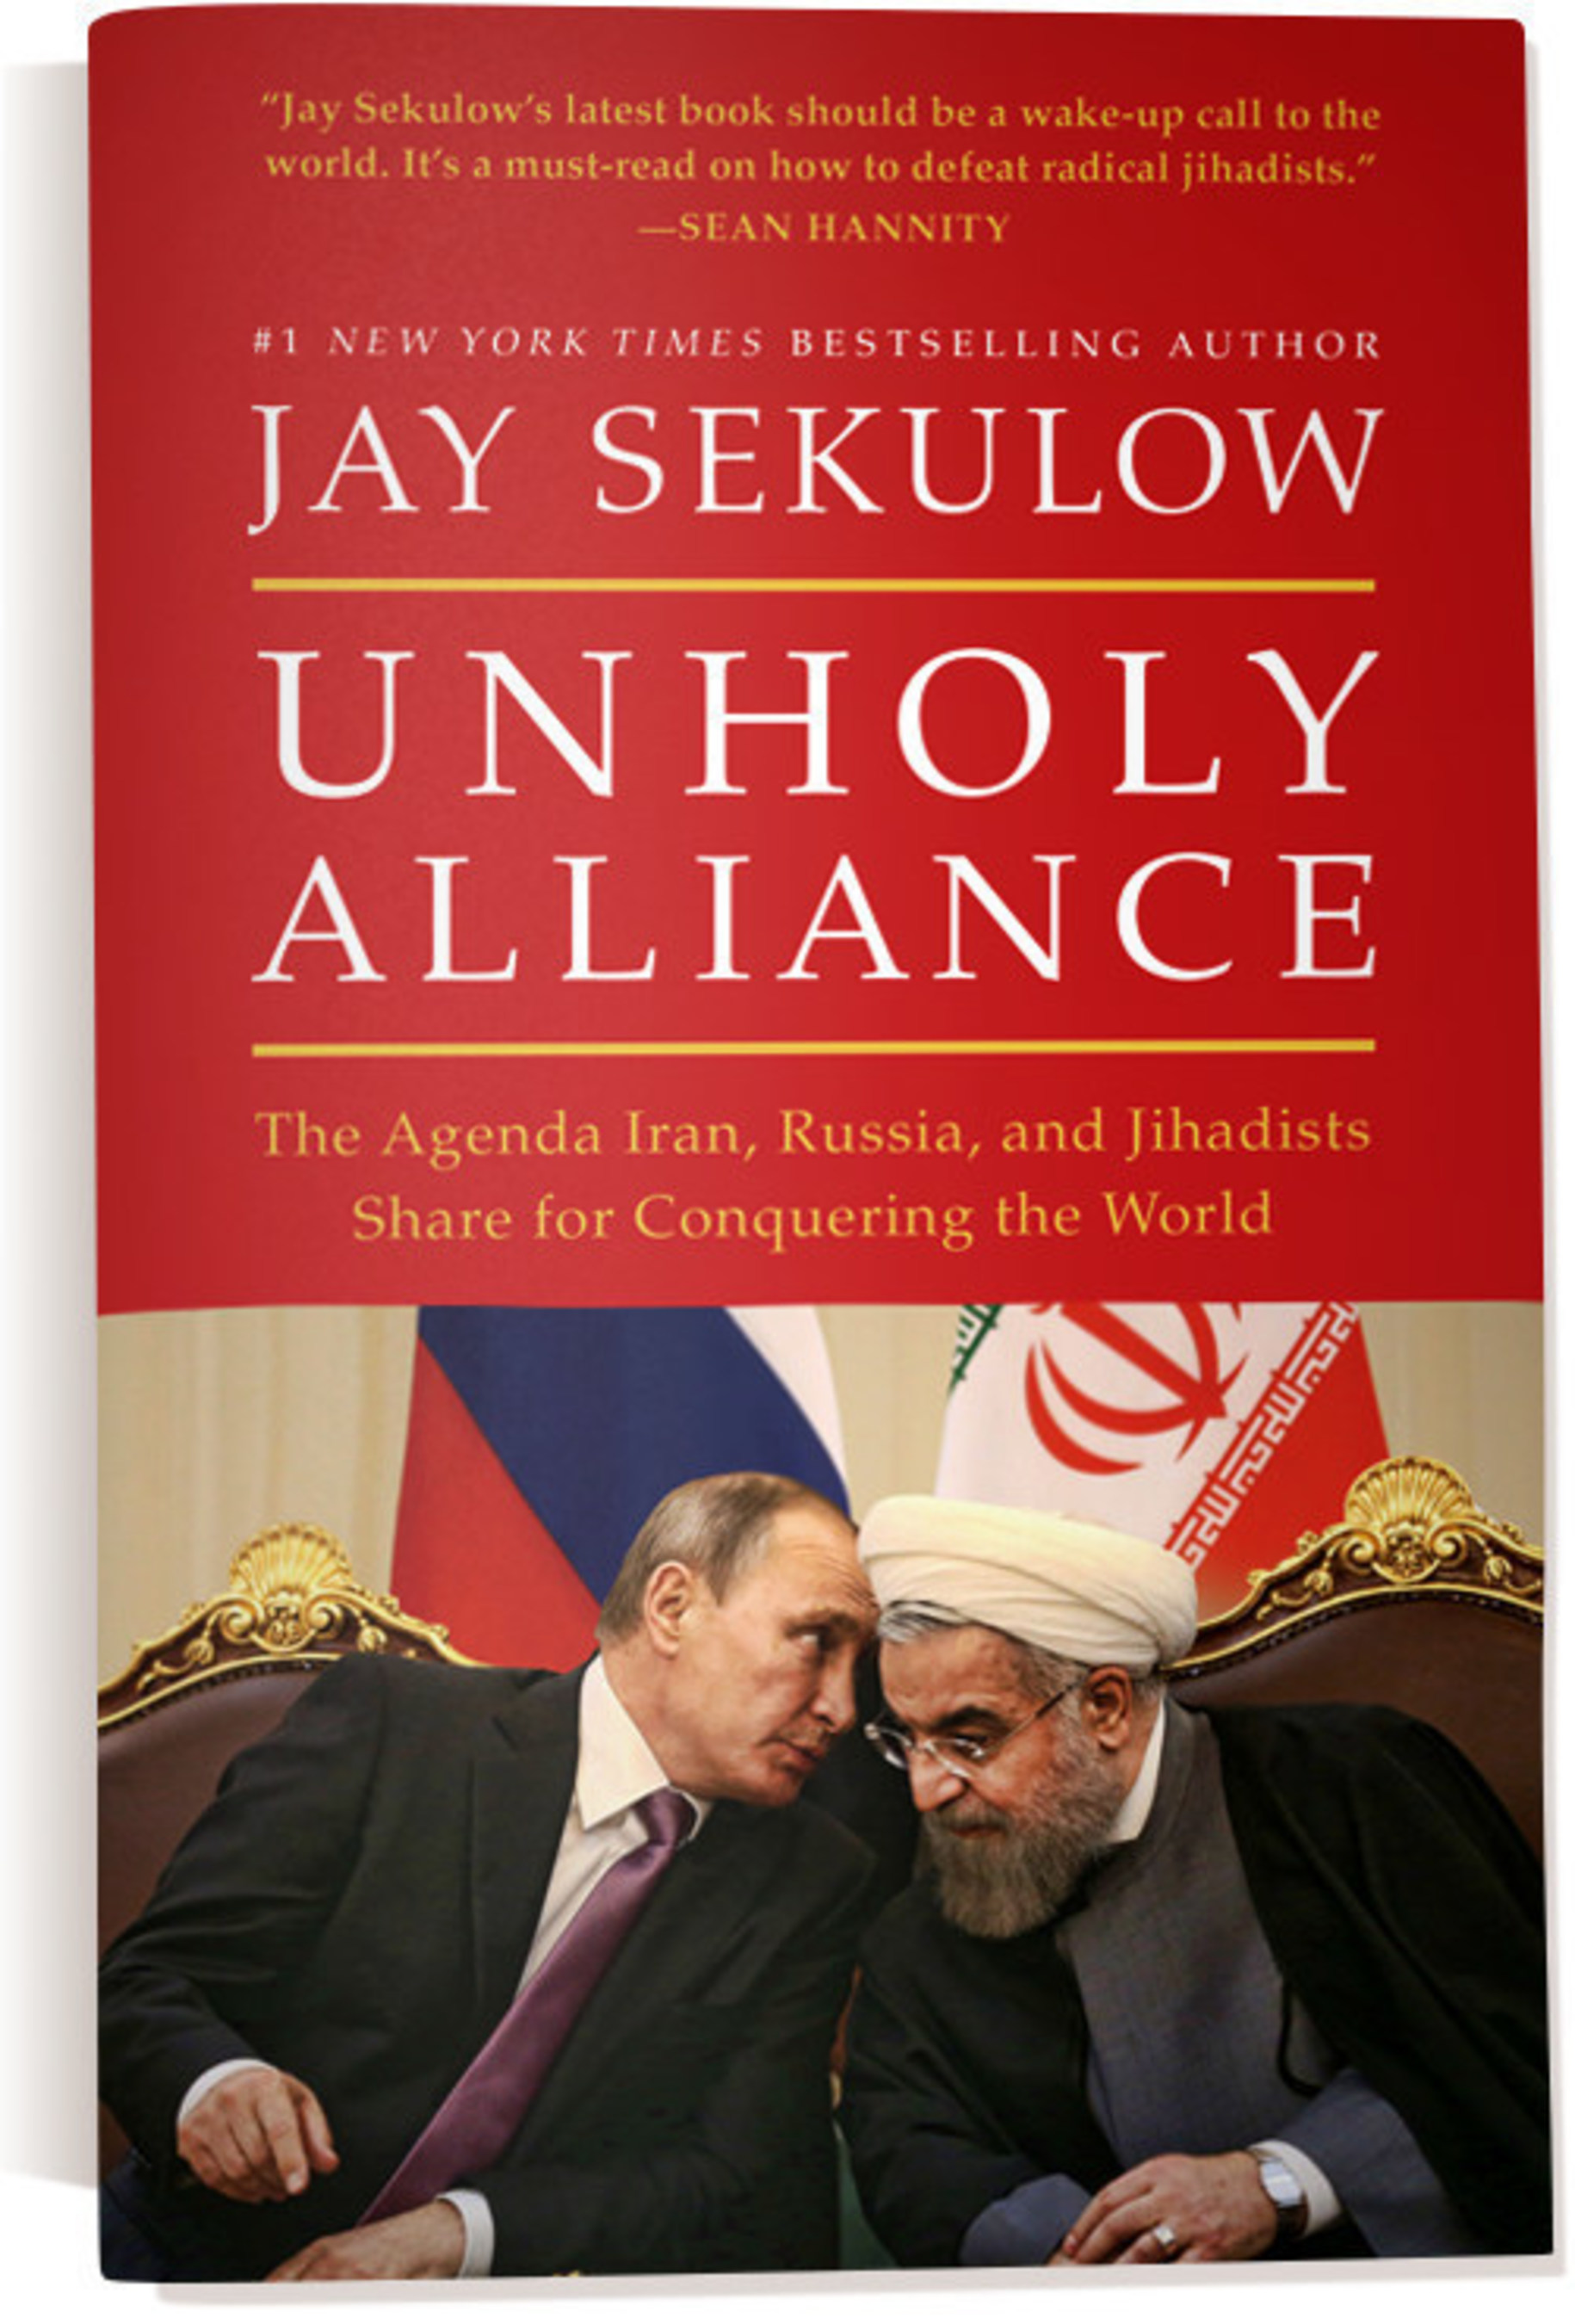 """Jay Sekulow from the American Center for Law and Justice will be the exclusive guest on TBN's """"Praise"""" talk show Thursday, November 17th, to discuss his latest book, """"Unholy Alliance,"""" and the danger radical Islam poses to America and the rest of the world."""